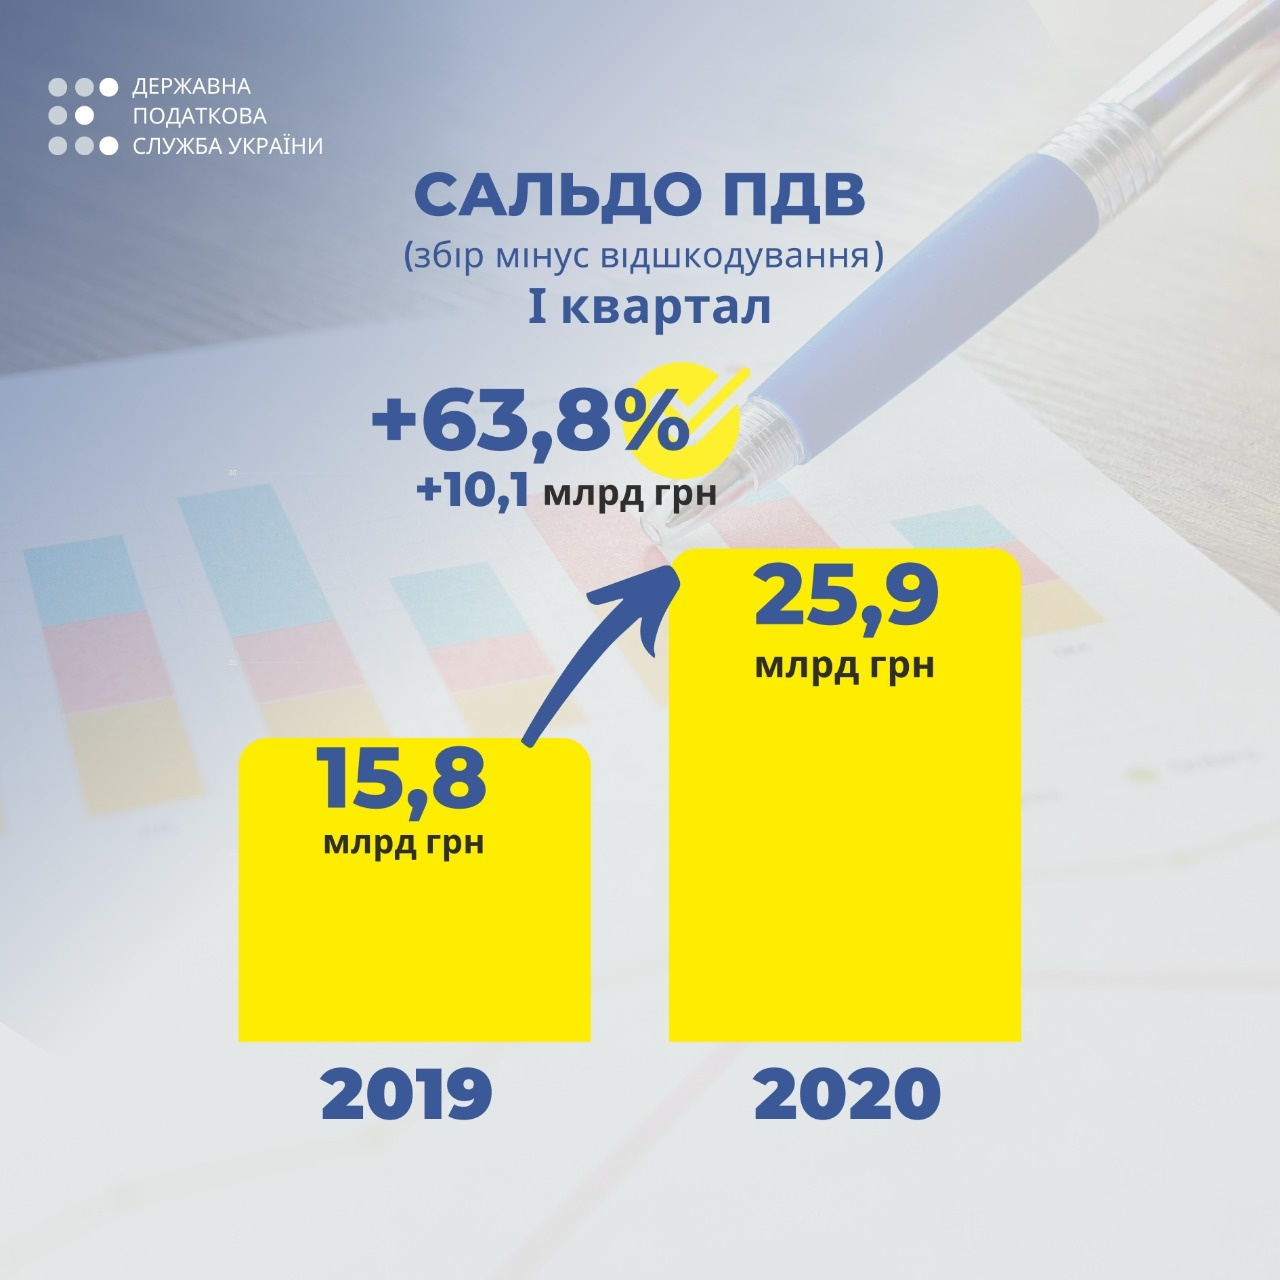 Инфографика: tax.gov.ua